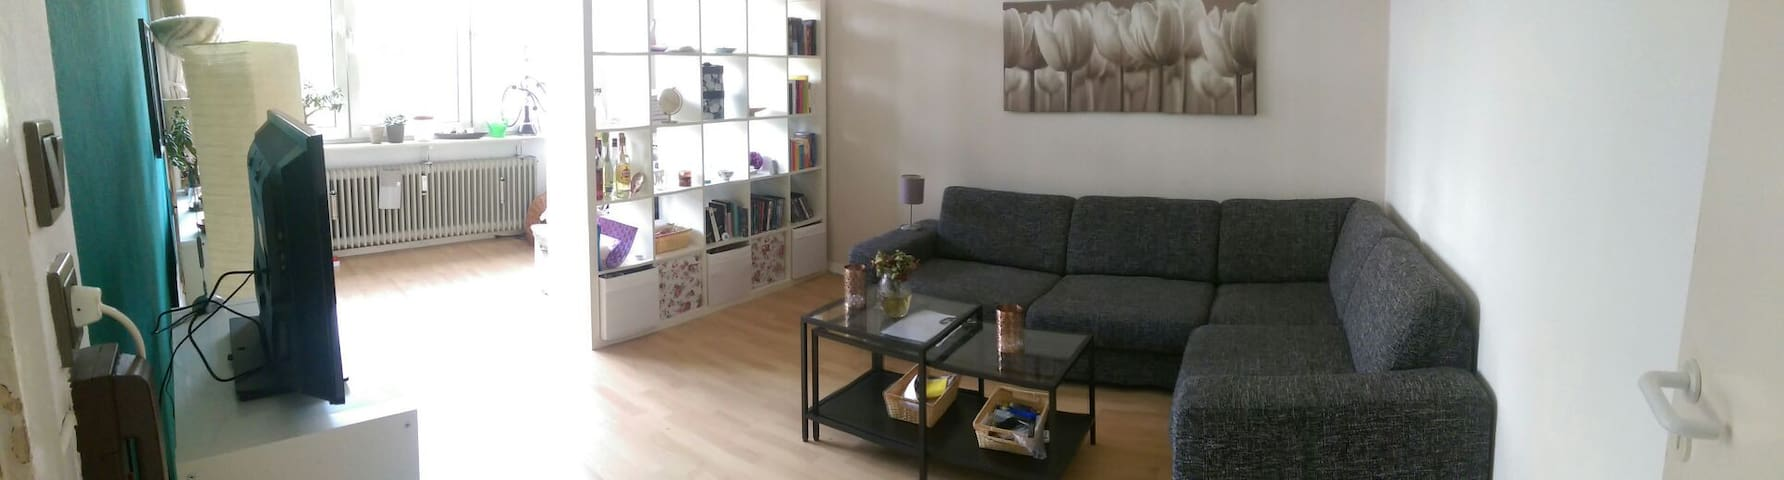 Apartment near Central Station - Bremen - Apartamento